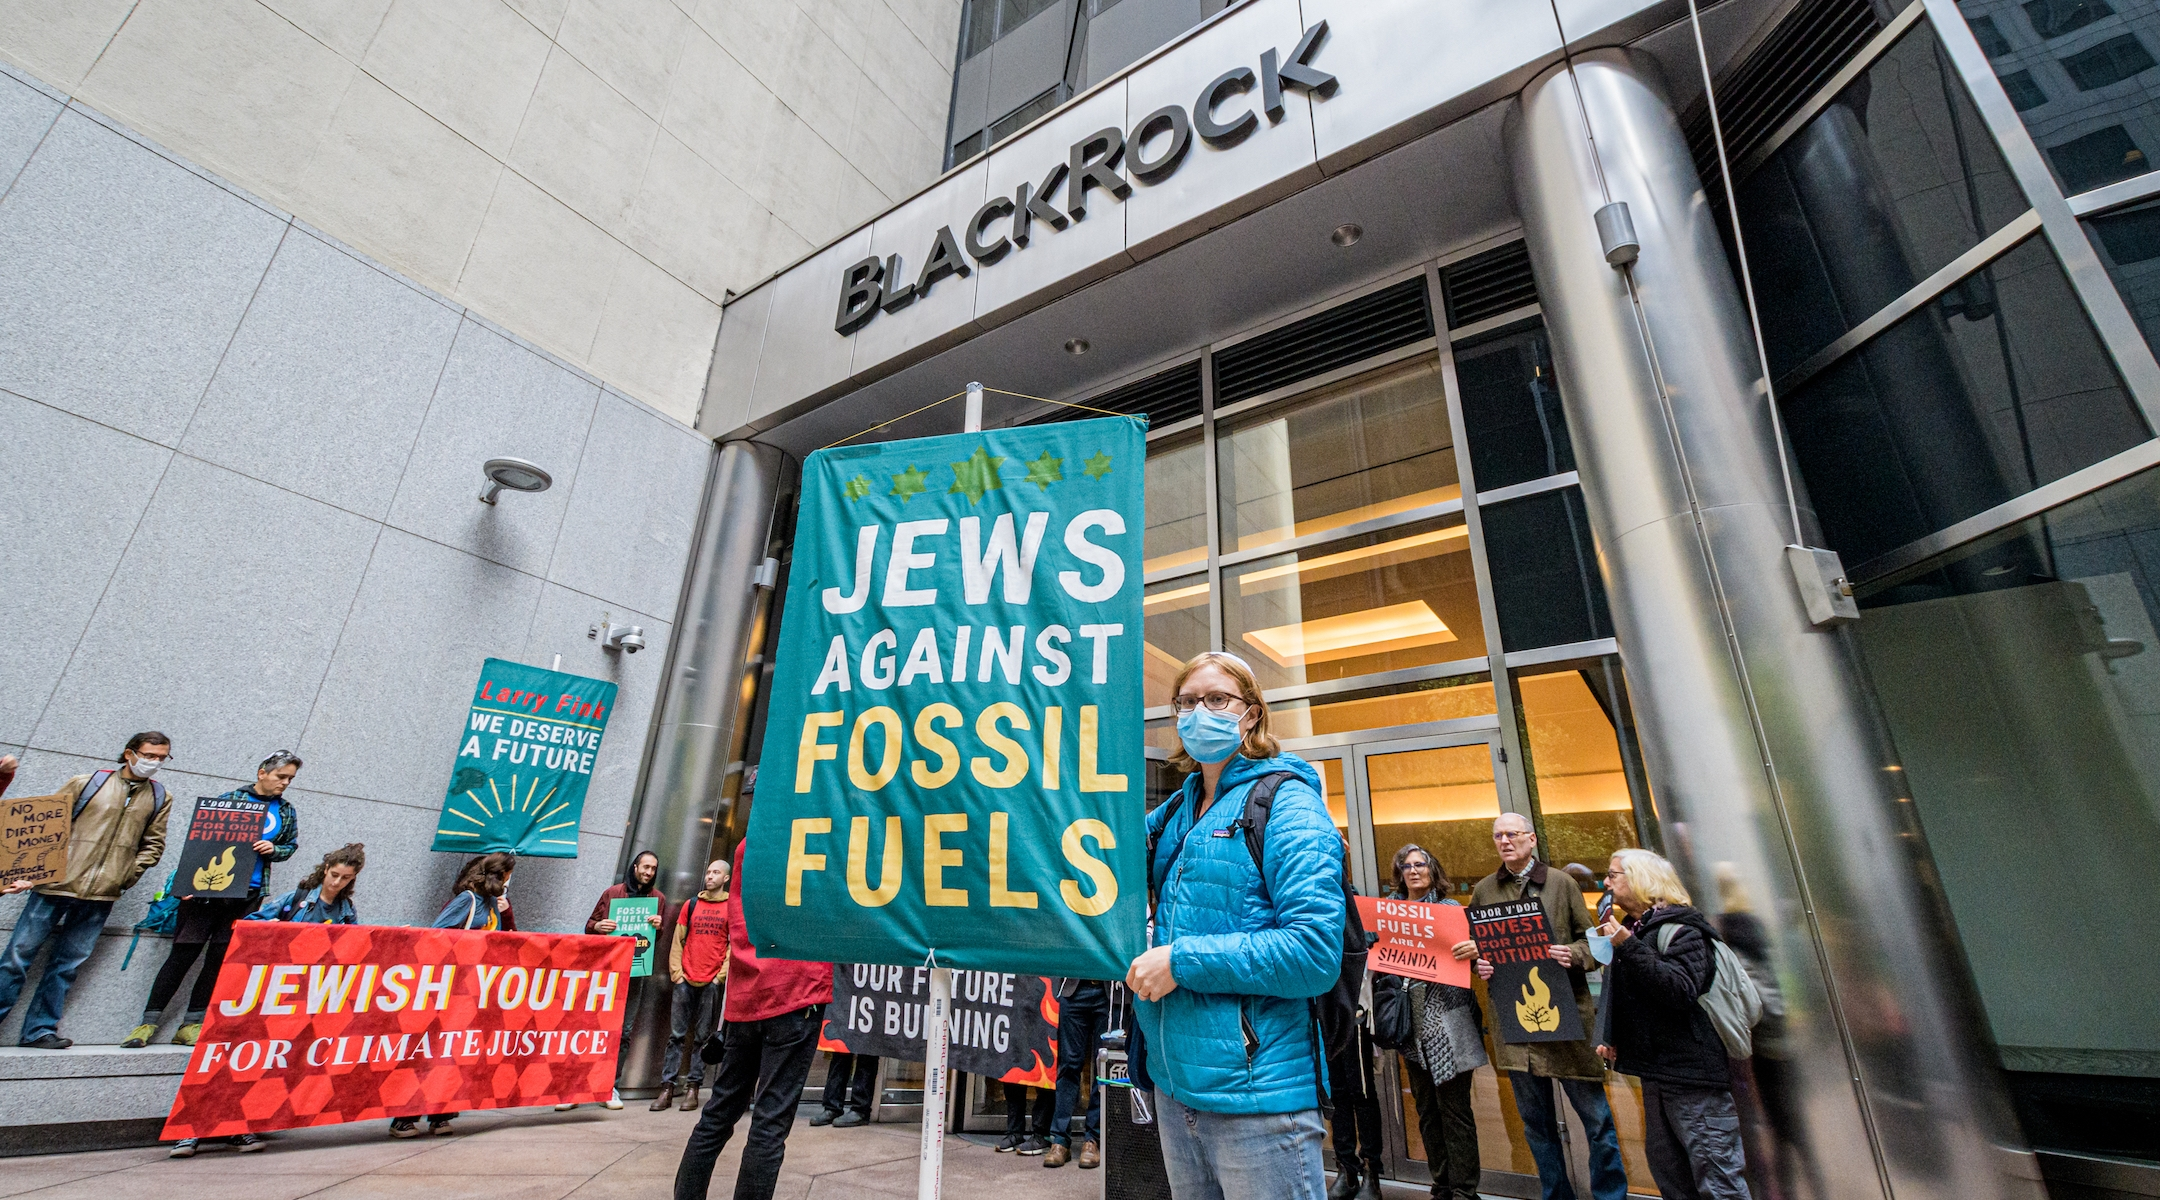 Rabbis arrested at NYC climate protest • Senators back terror victims • Have a 'Nora...